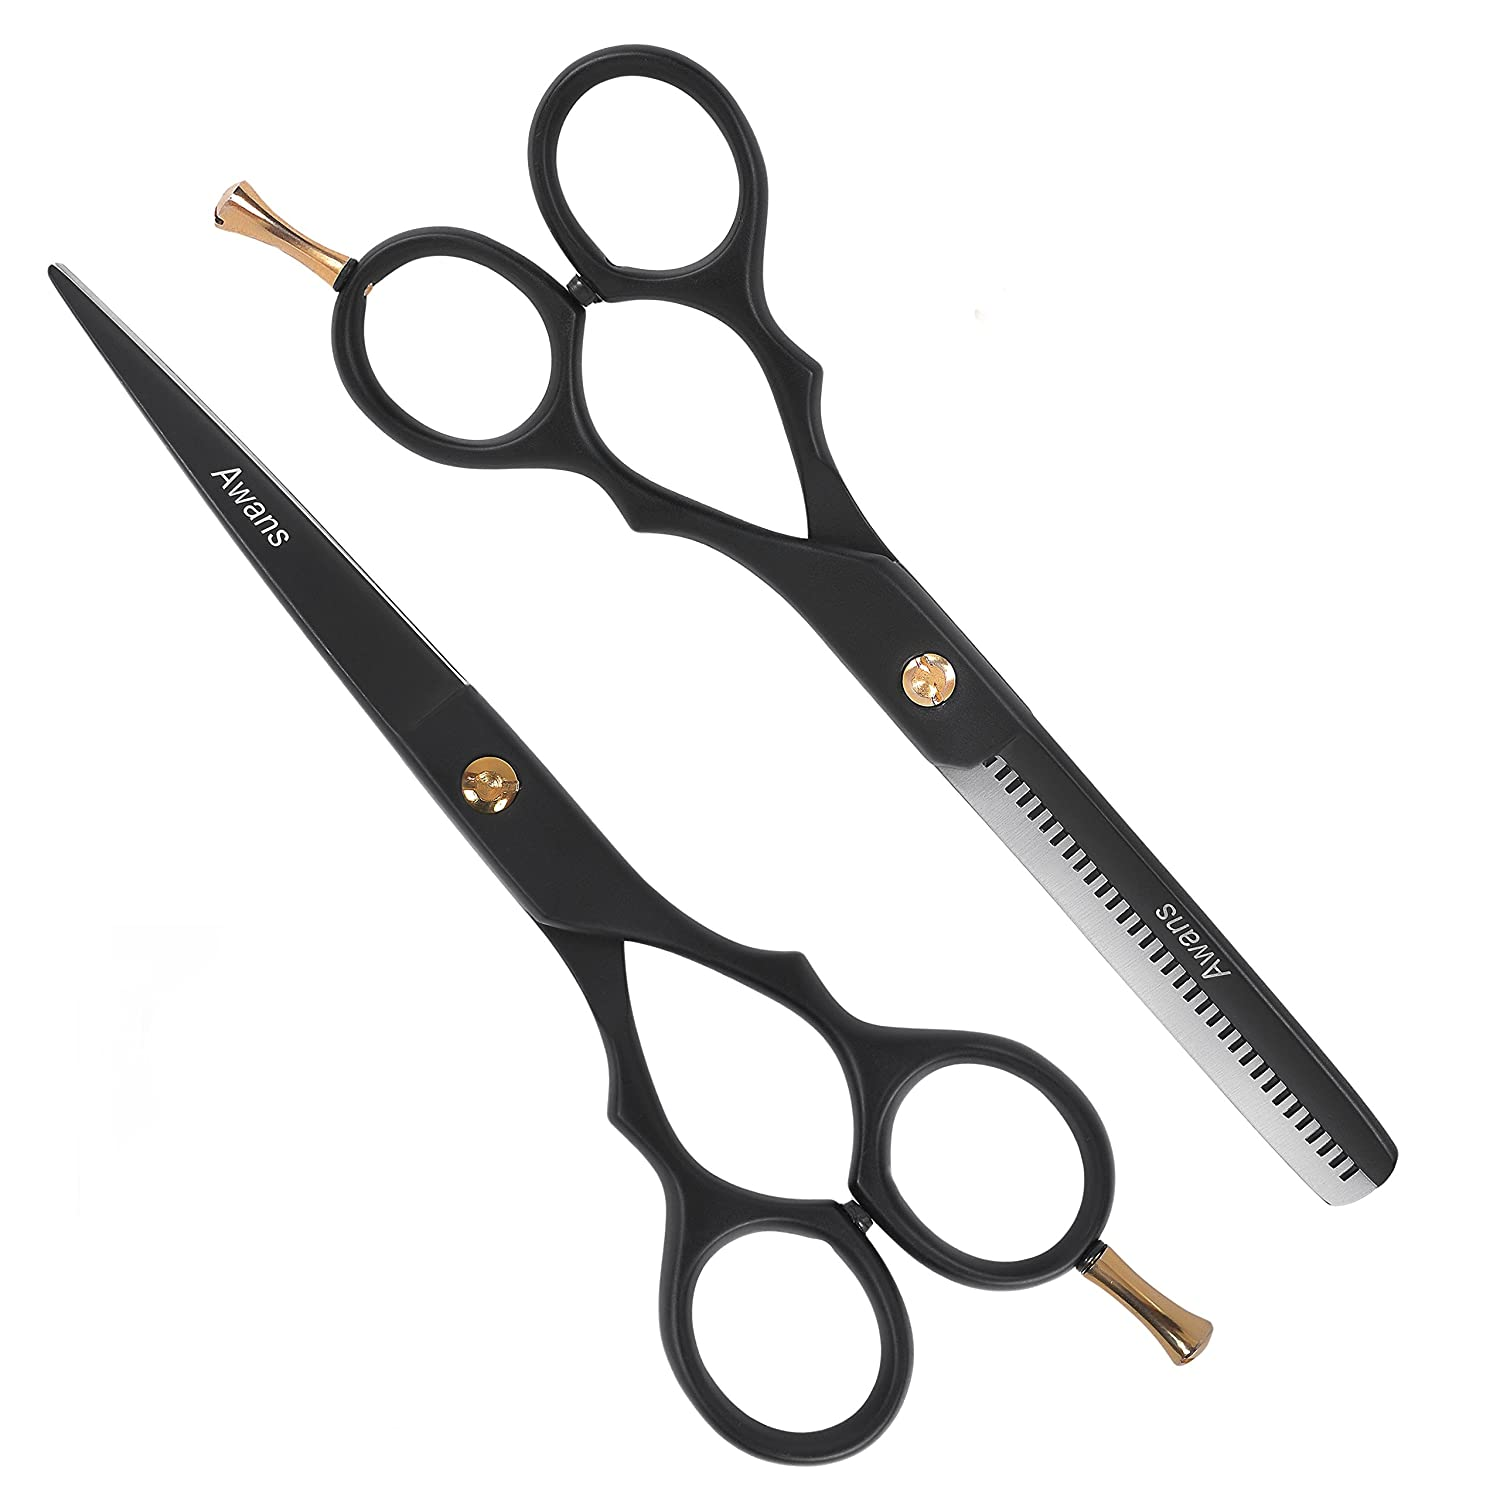 Awans Hairdressing Barber Salon Scissors 6, Thinning Scissors 6 With Adjustment Key 5060349502783